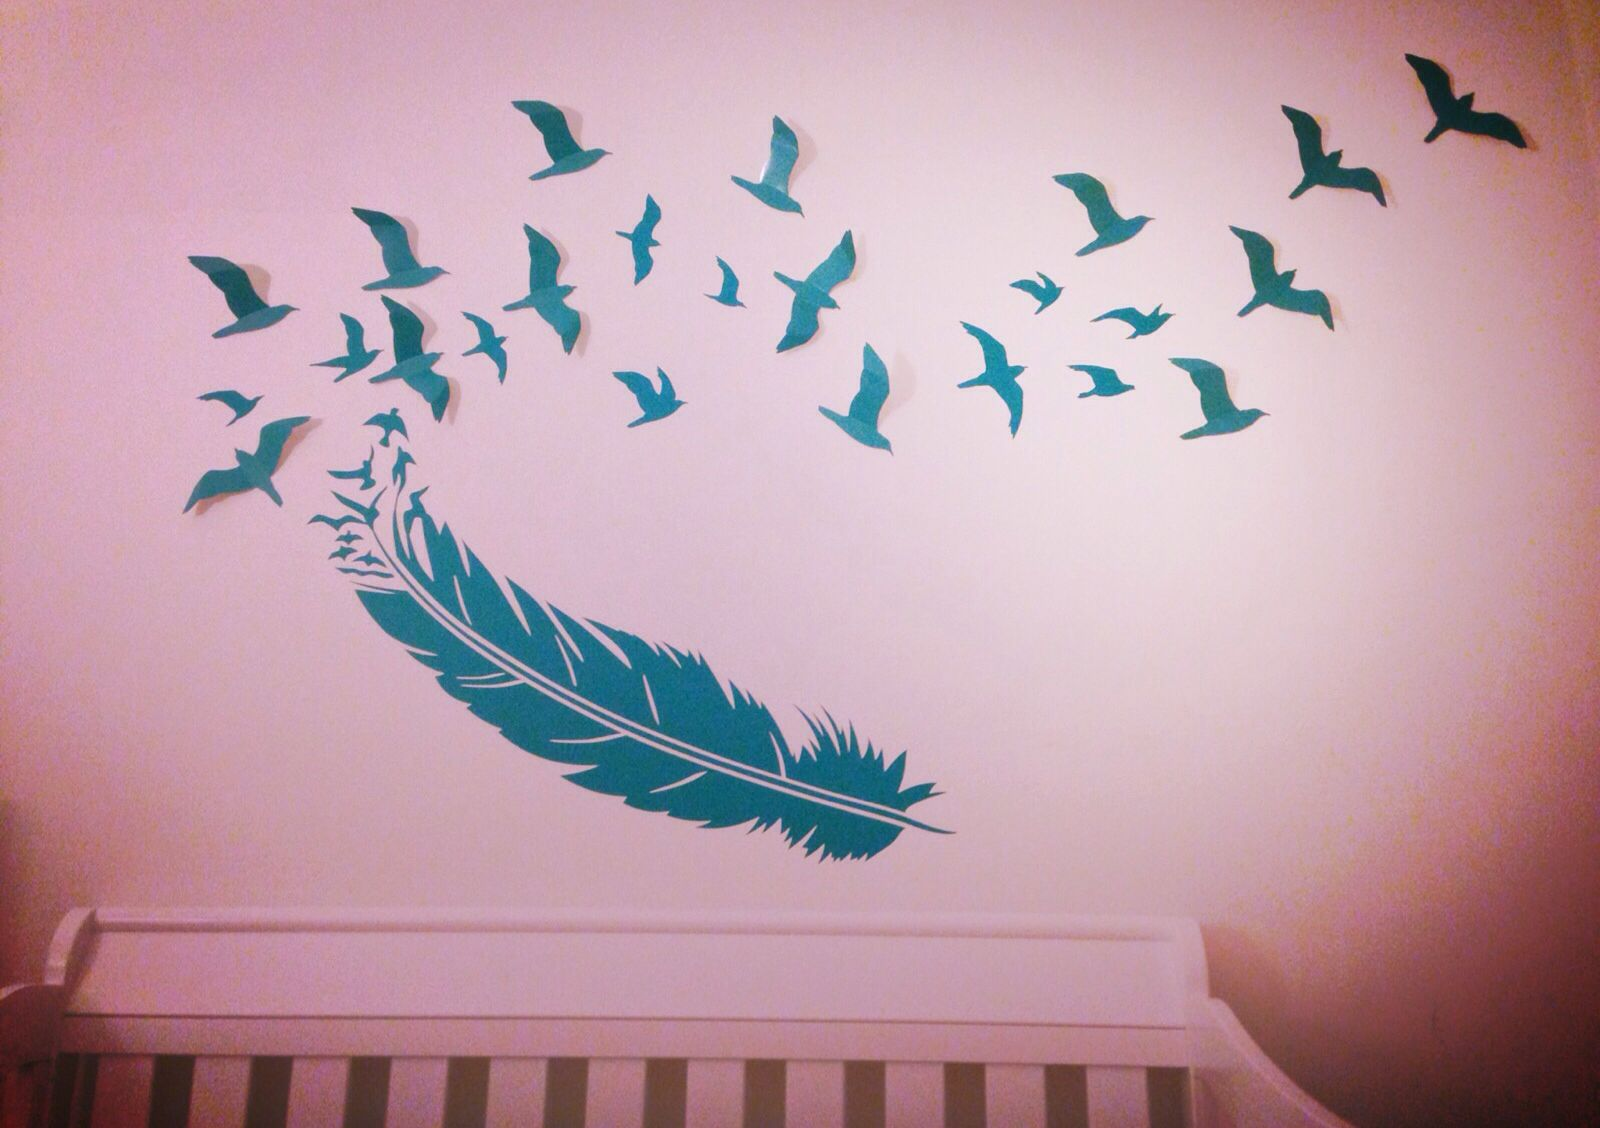 Wall Decor Stickers Birds : Feather birds wall decal